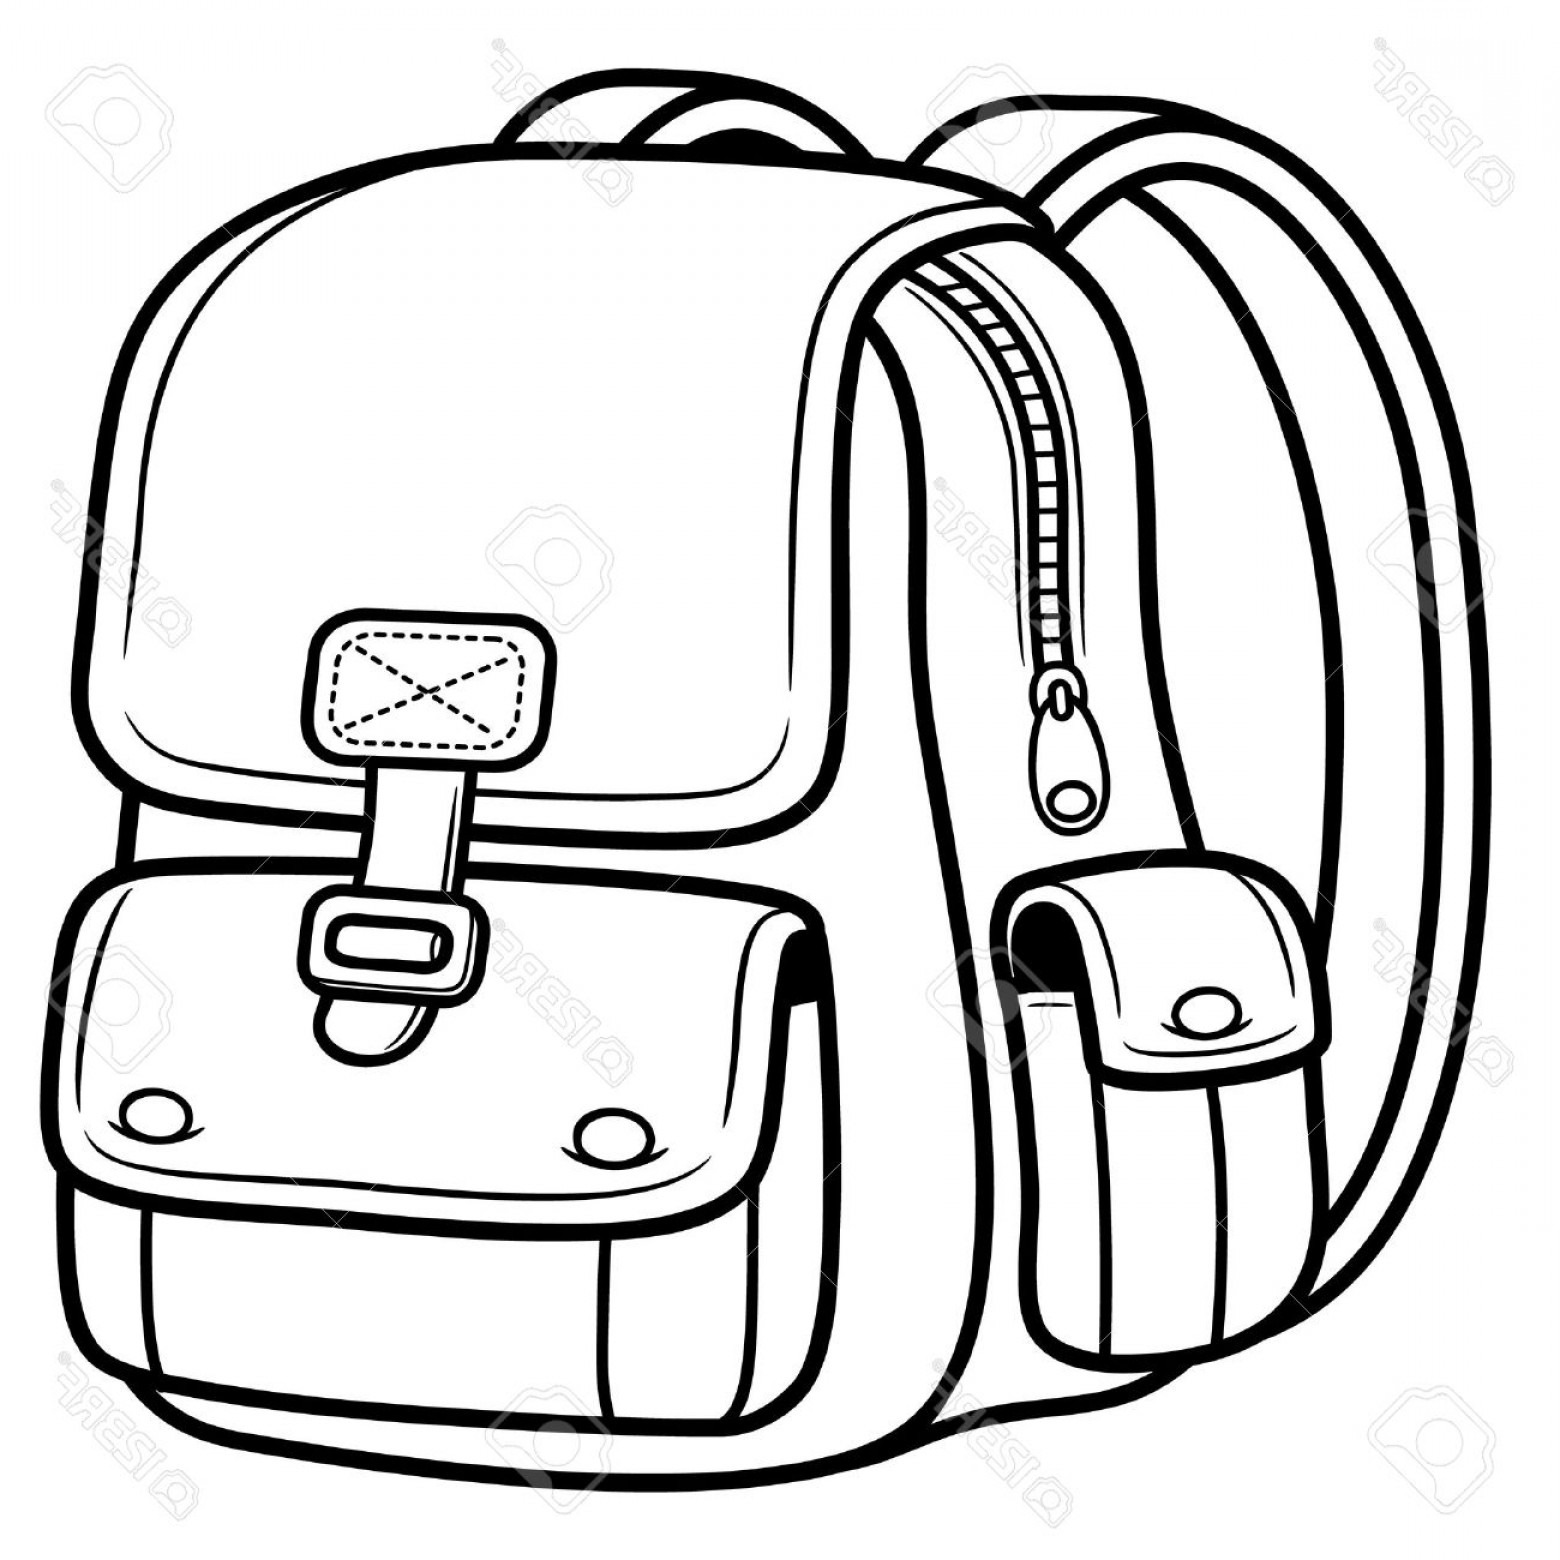 Bags clipart black and white 5 » Clipart Station.